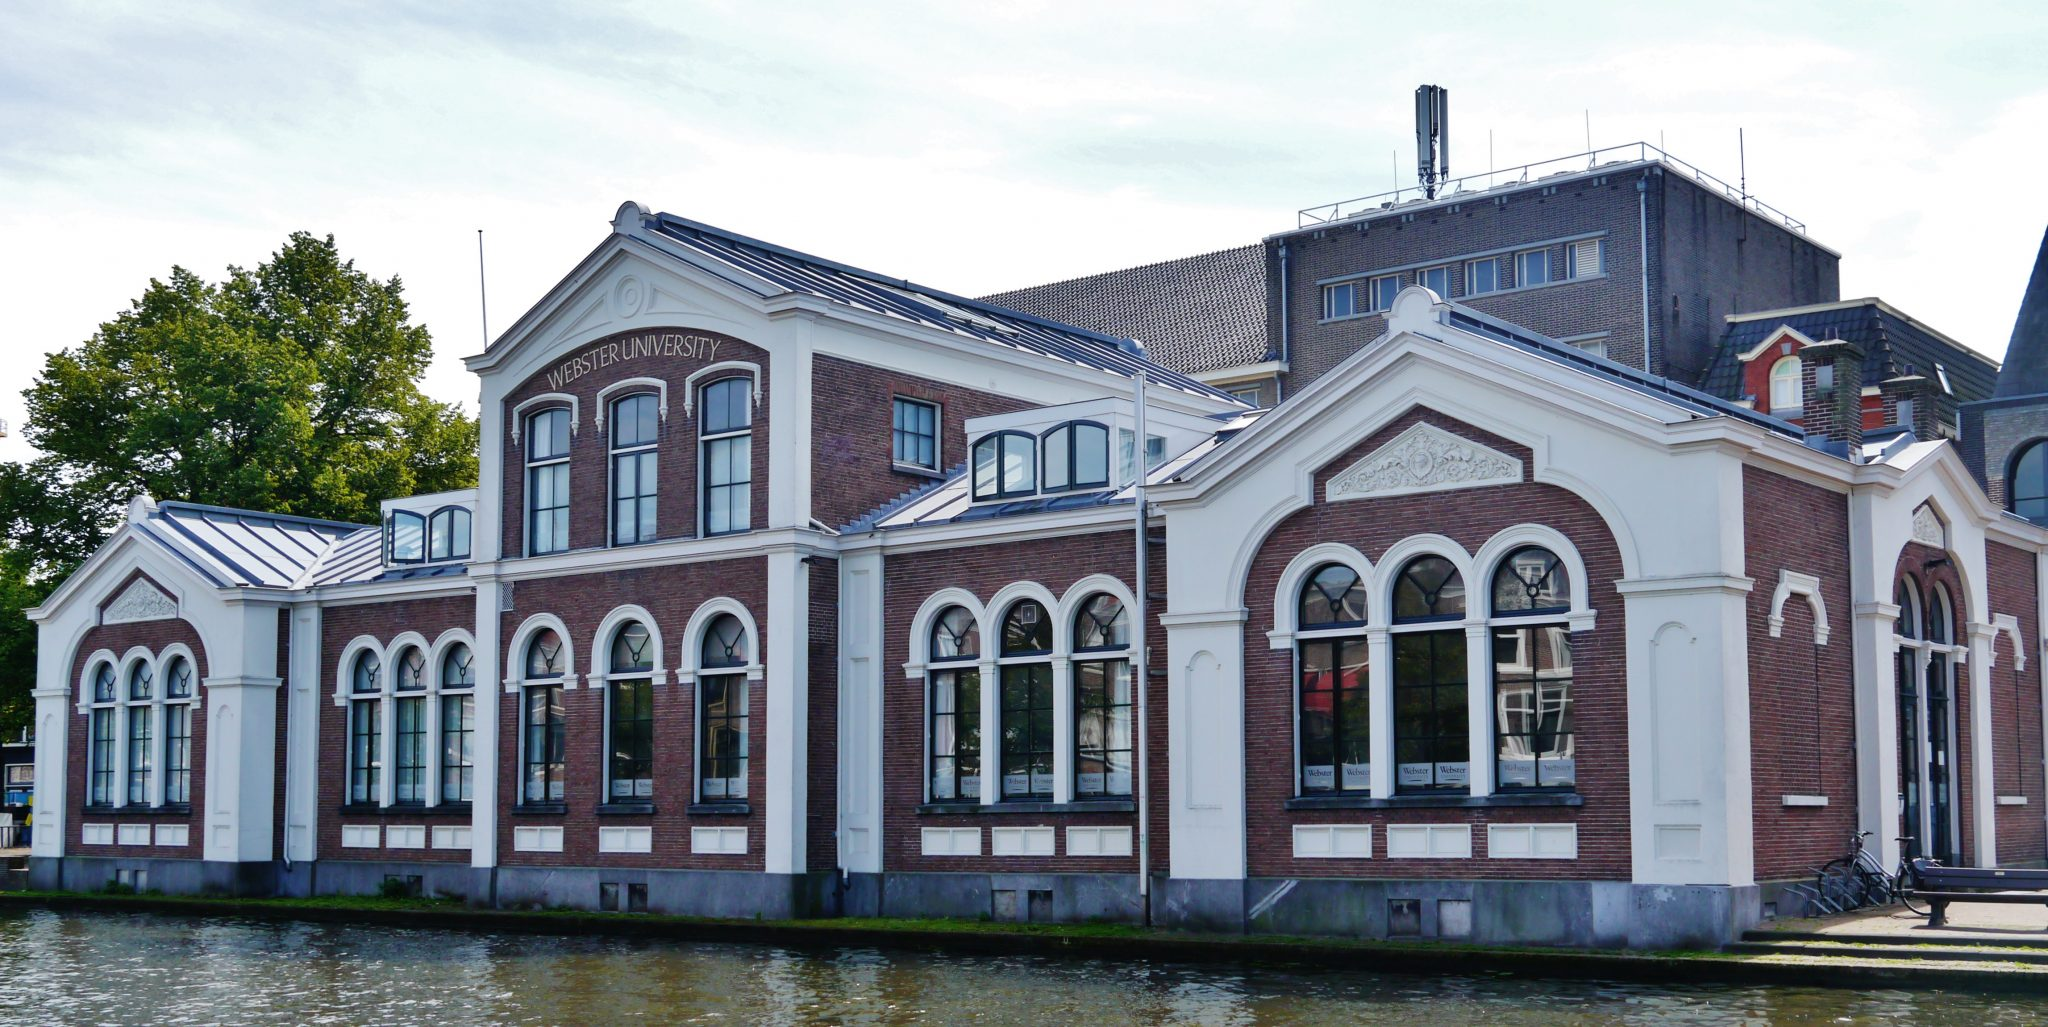 Webster University Leiden-- one of their first international campuses